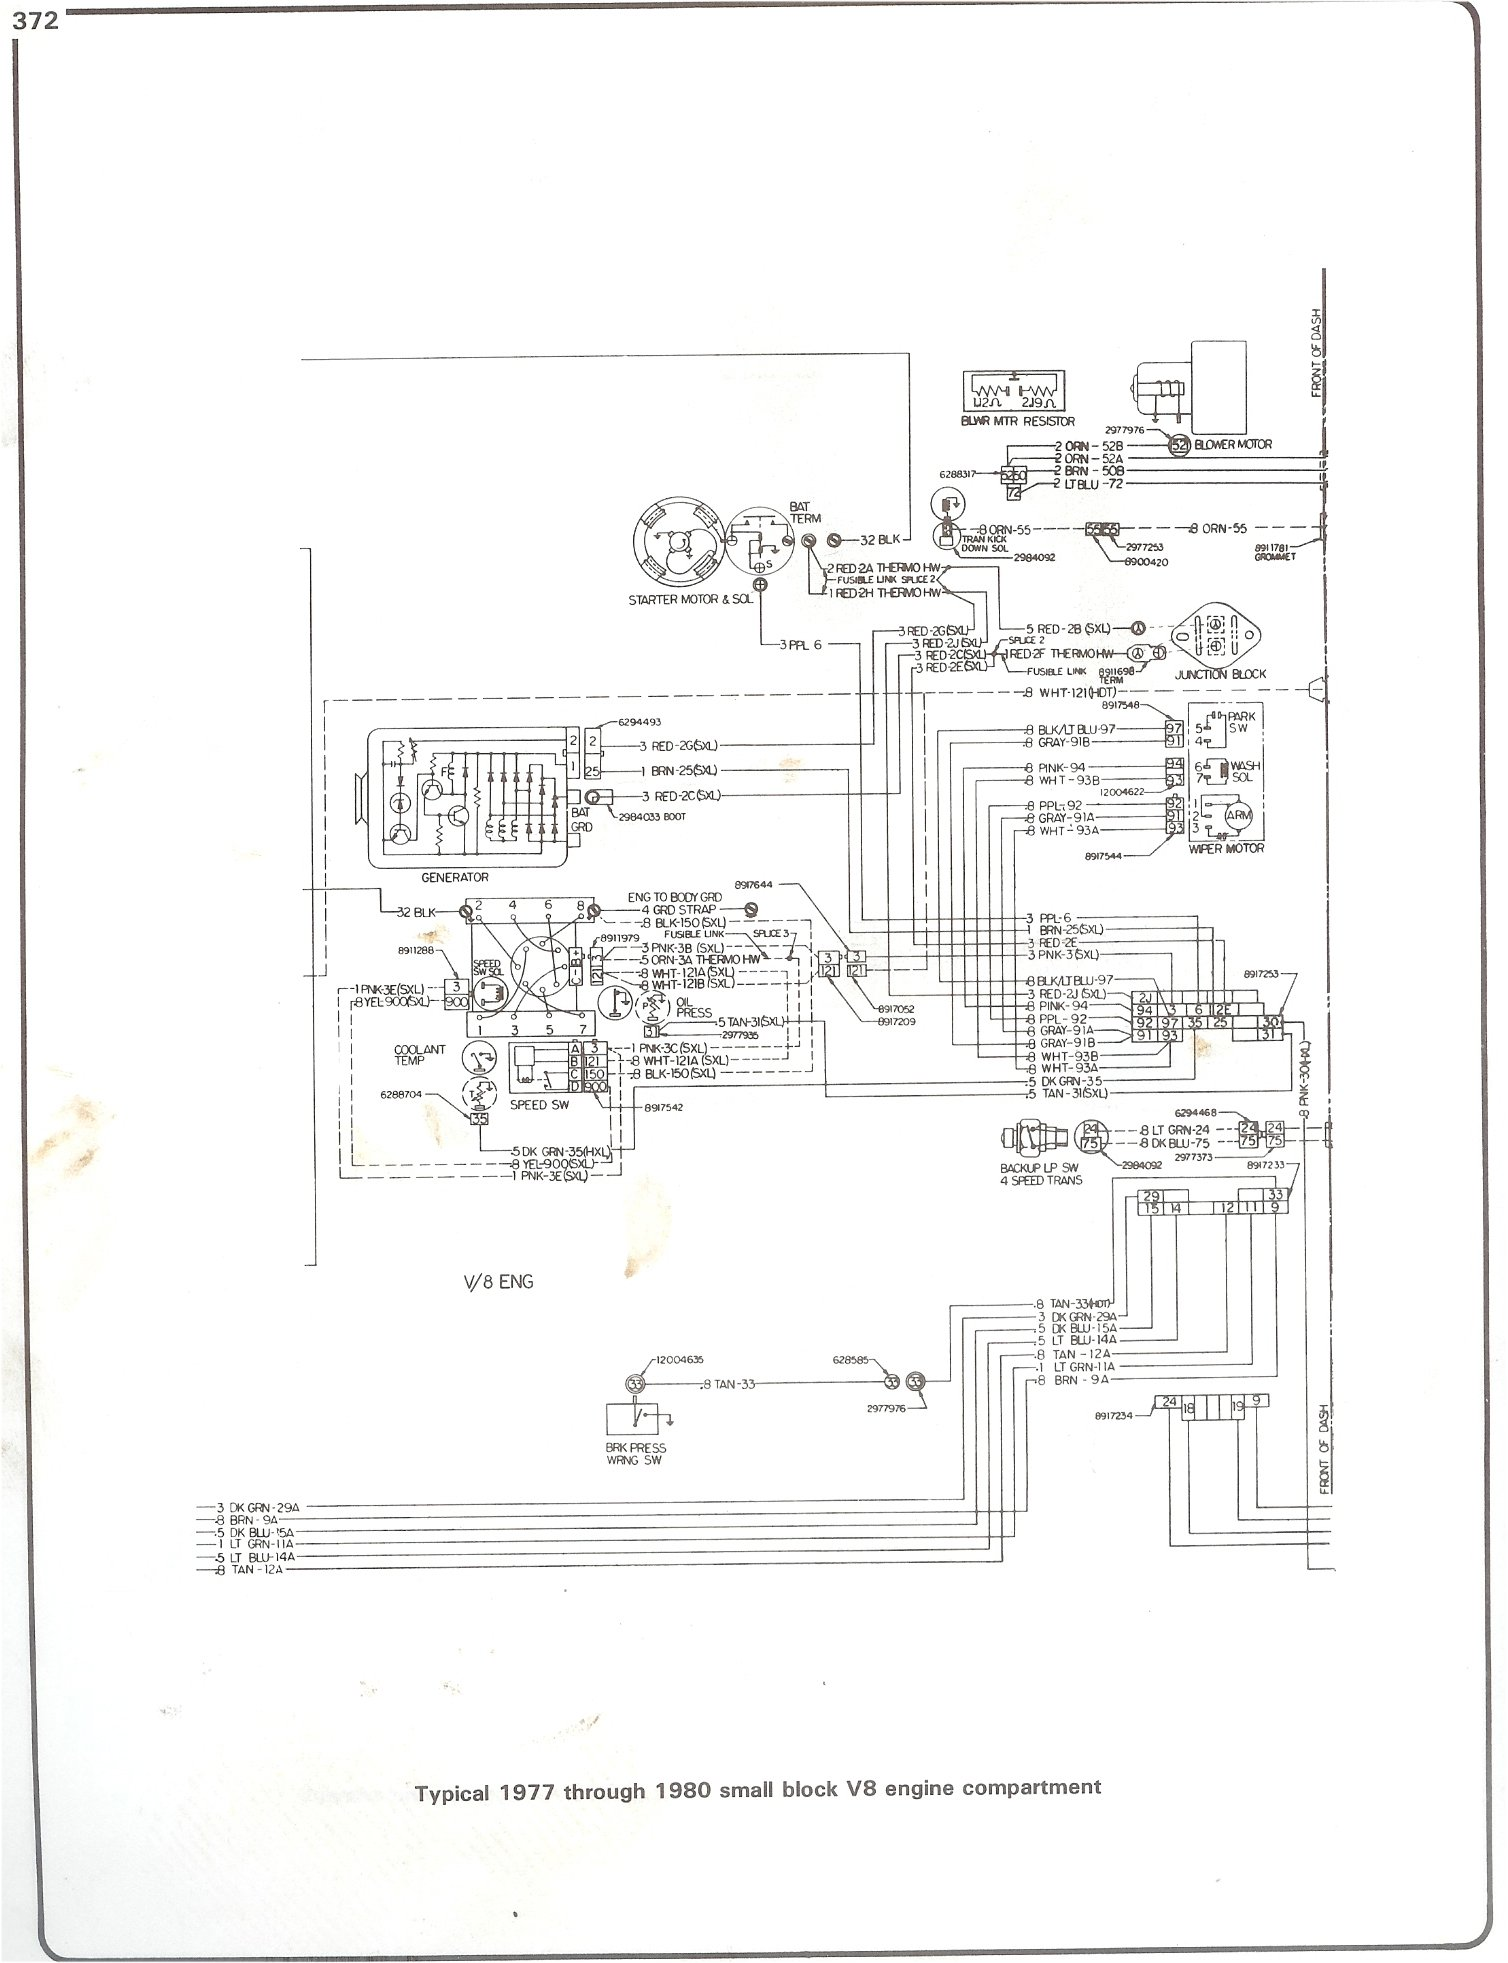 1973 chevy truck electrical schematics wiring diagram1973 chevy truck electrical schematics